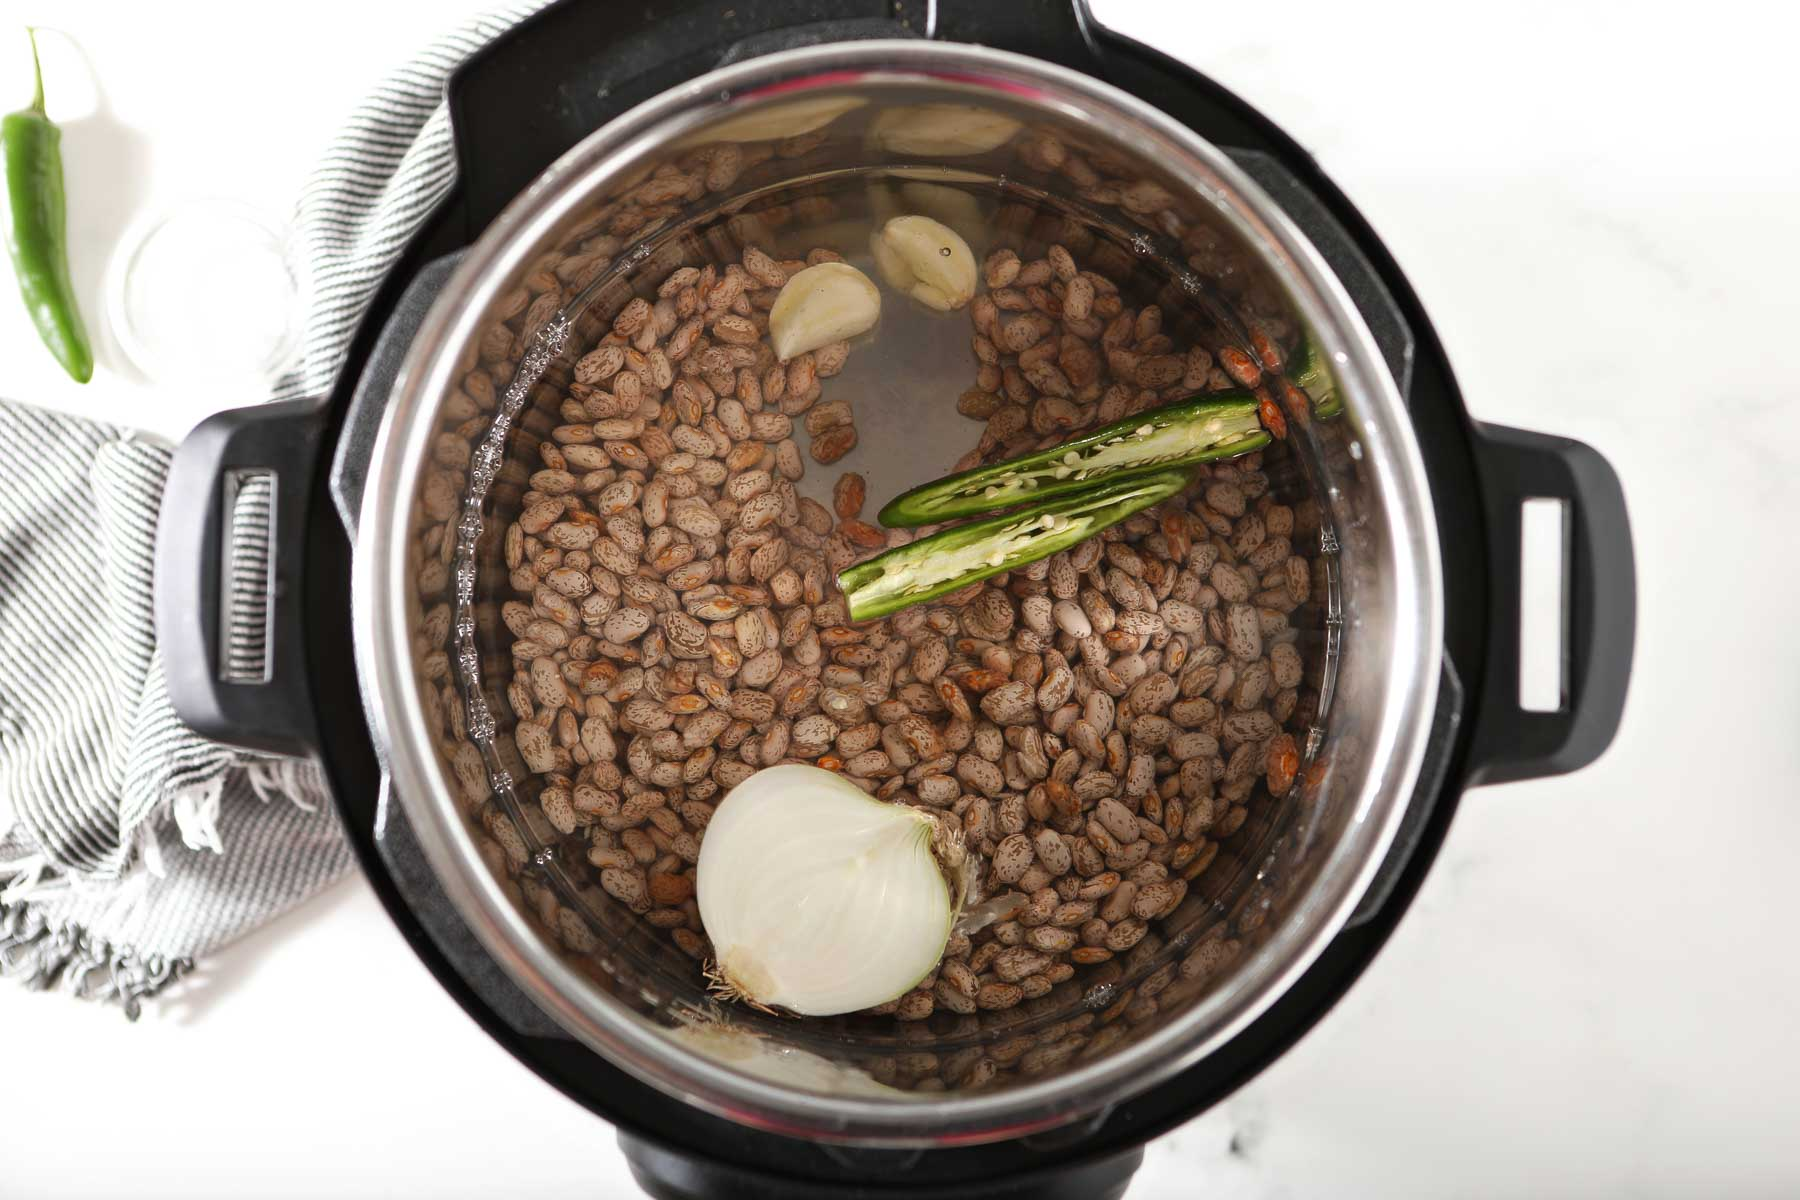 Instant pot with beans, water and spices.